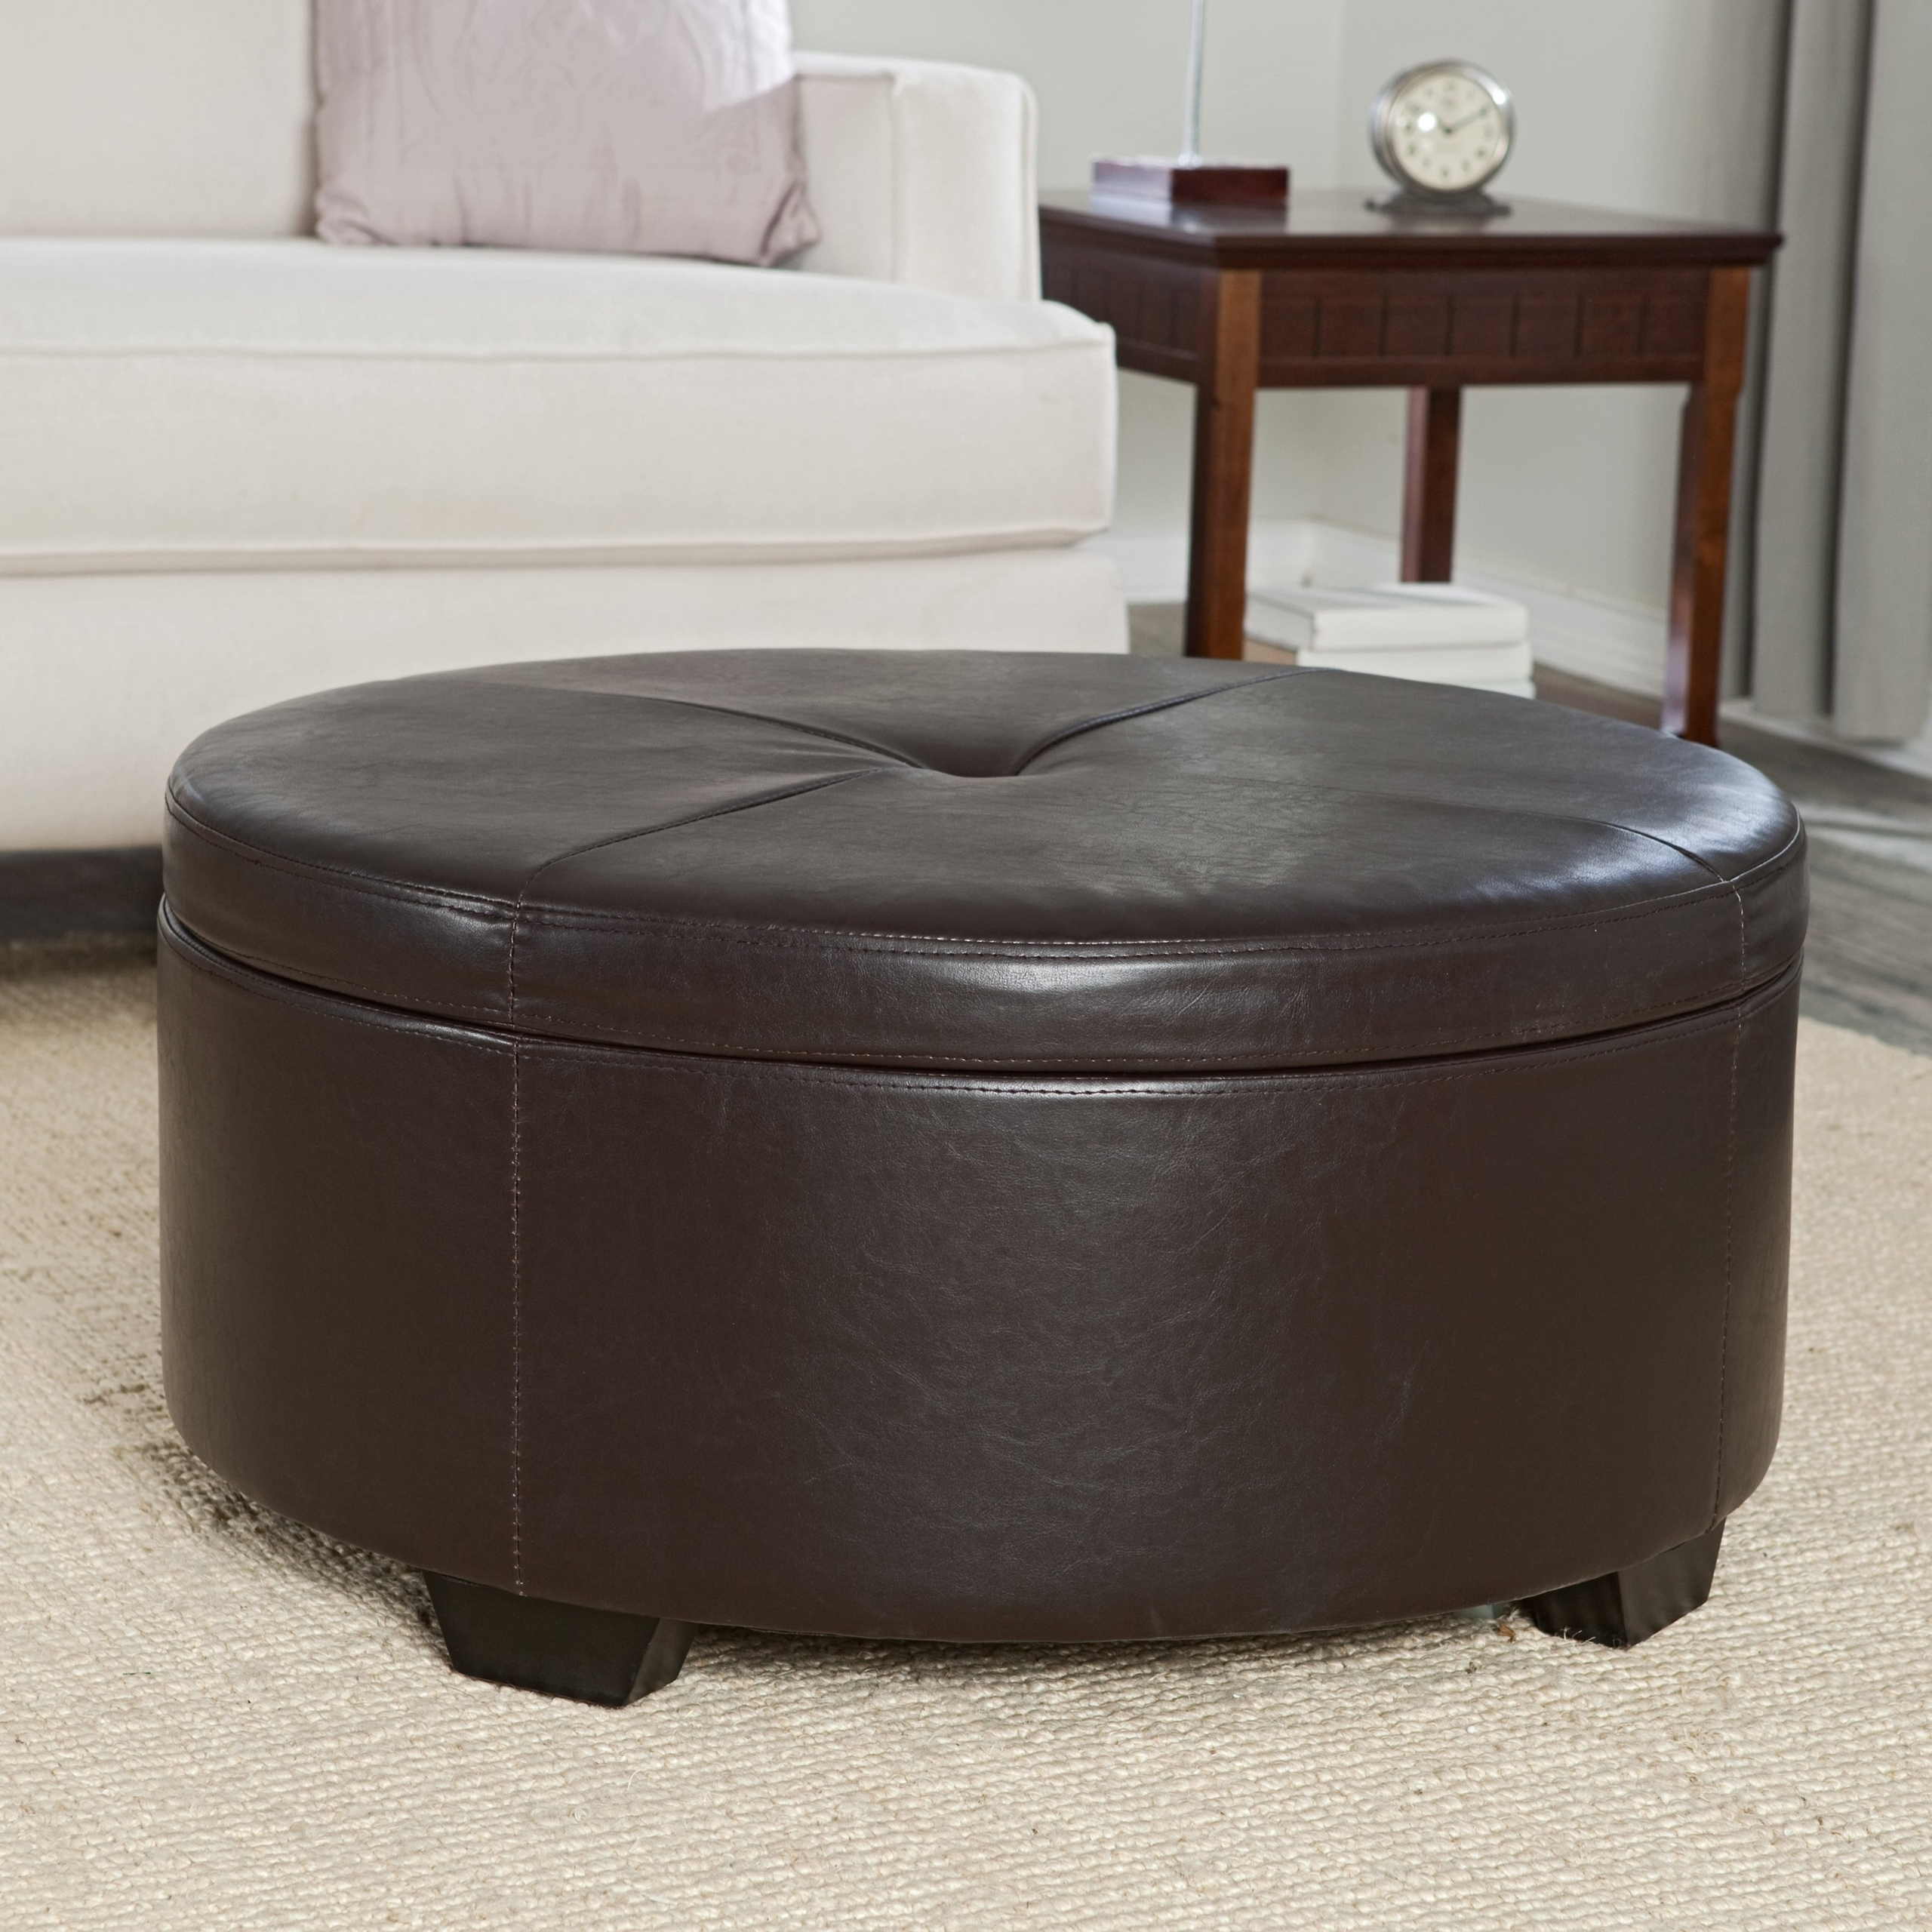 Storage Ottoman Coffee Table You Ll Love In 2021 Visualhunt